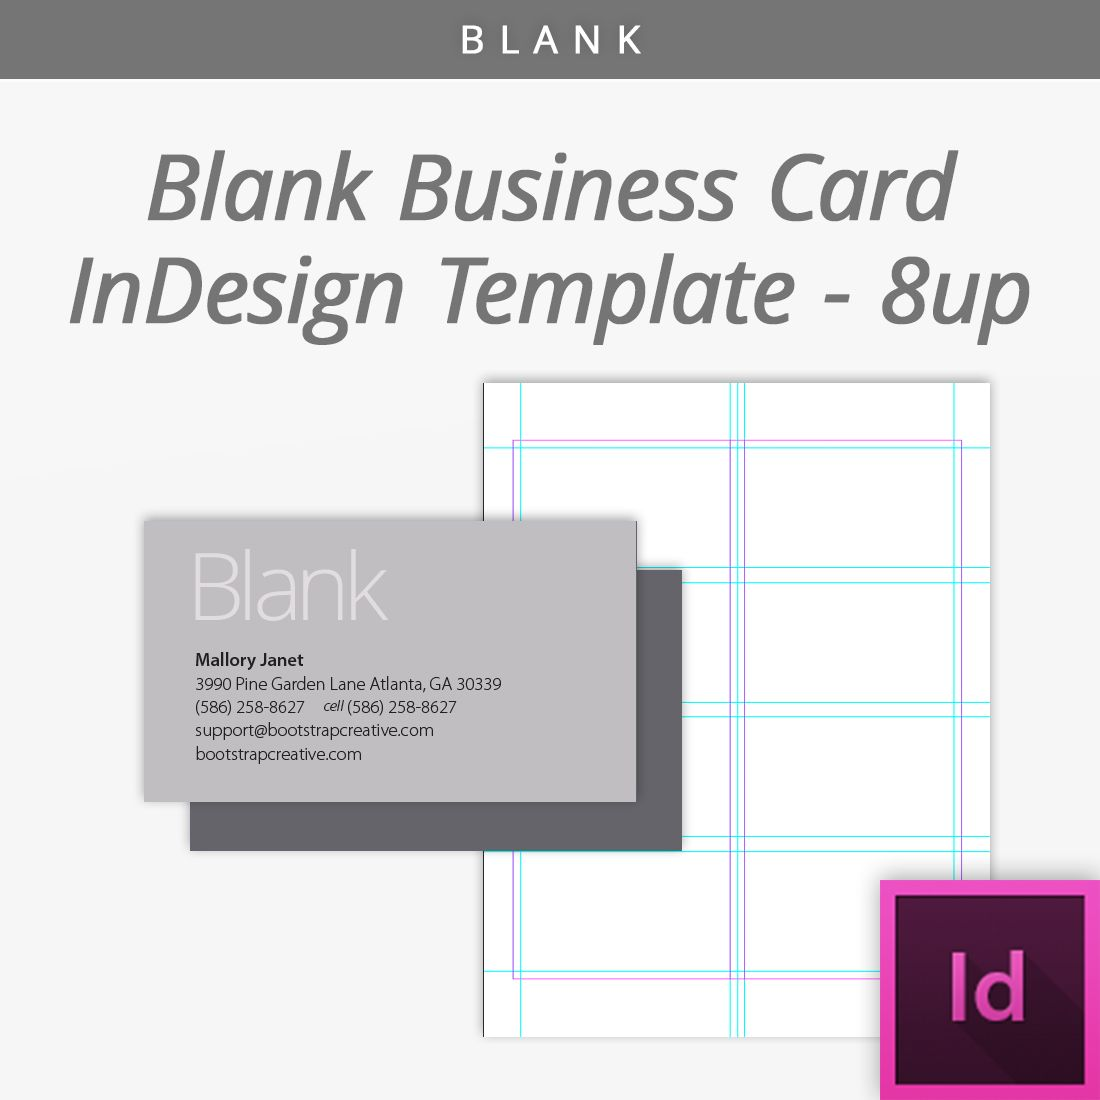 Blank indesign business card template 8 up free download blank indesign business card template 8 up free download designtemplate accmission Image collections